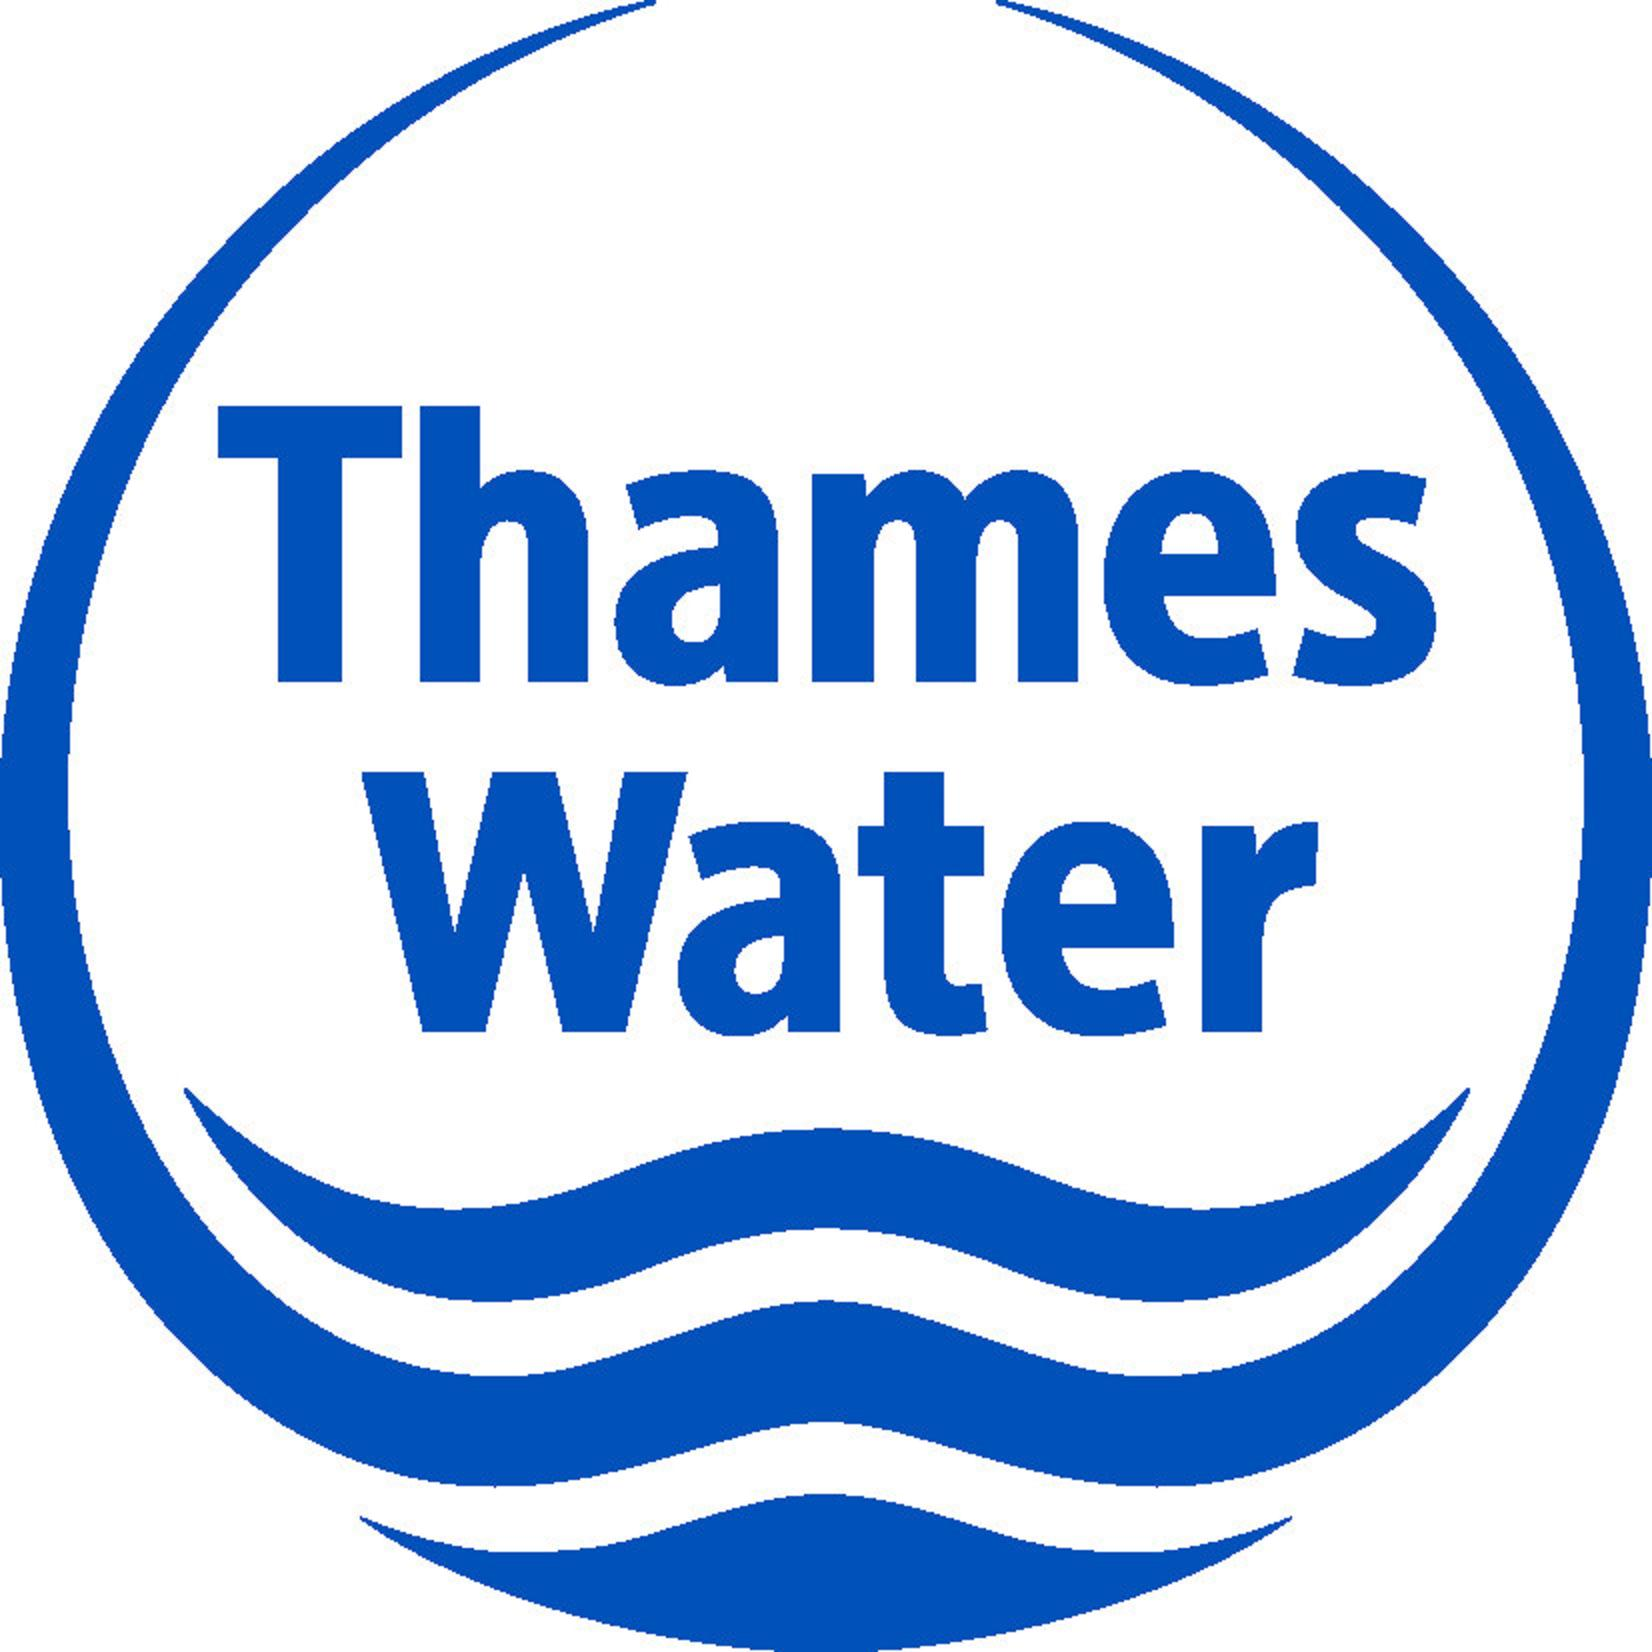 Thames Water engineers are at the burst main in Woodford High Road